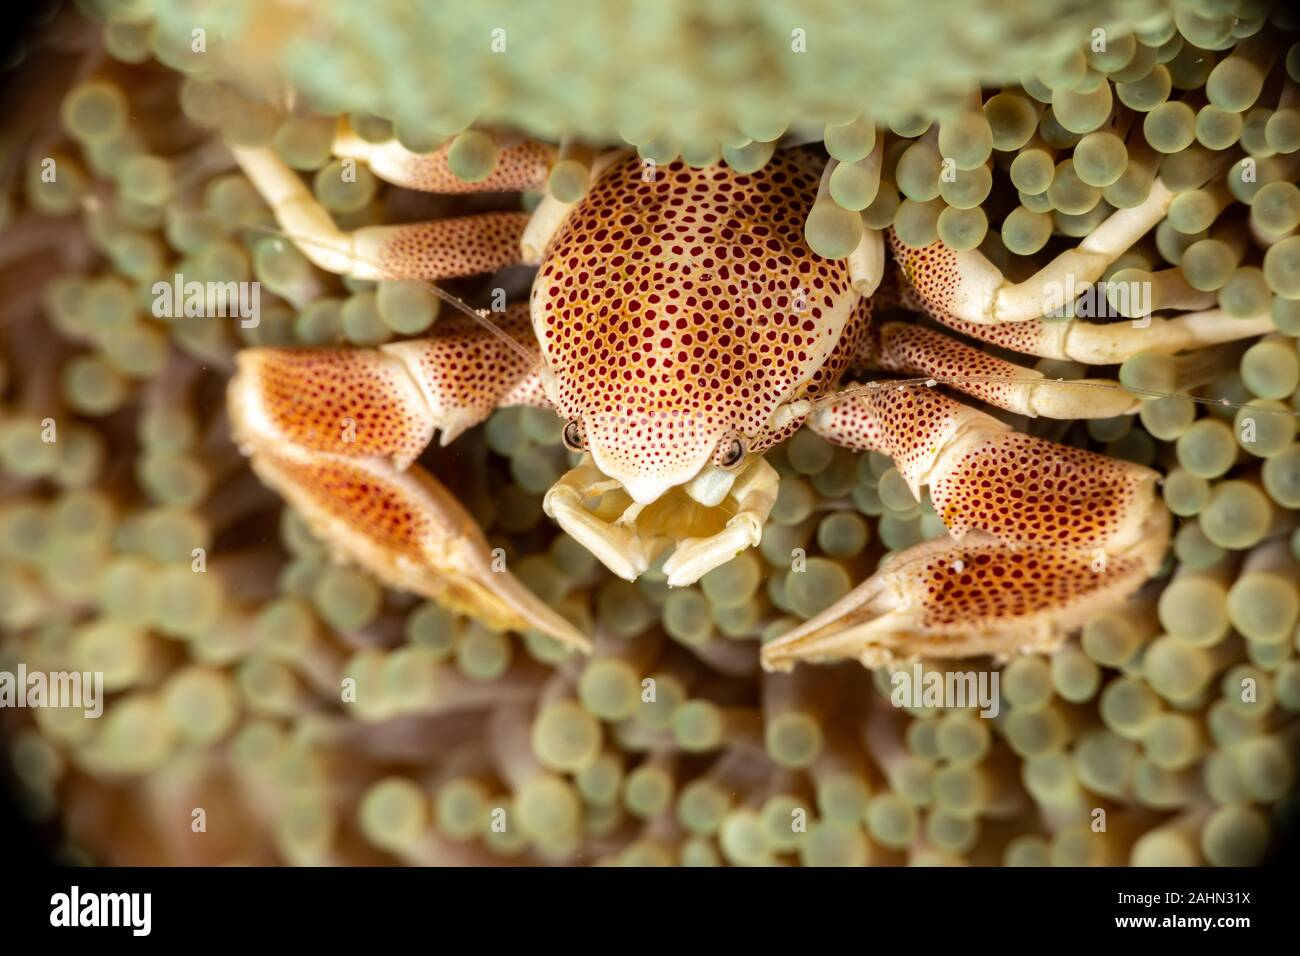 Porcelain crab from the Indo-Pacific region, Neopetrolisthes maculatus Stock Photo